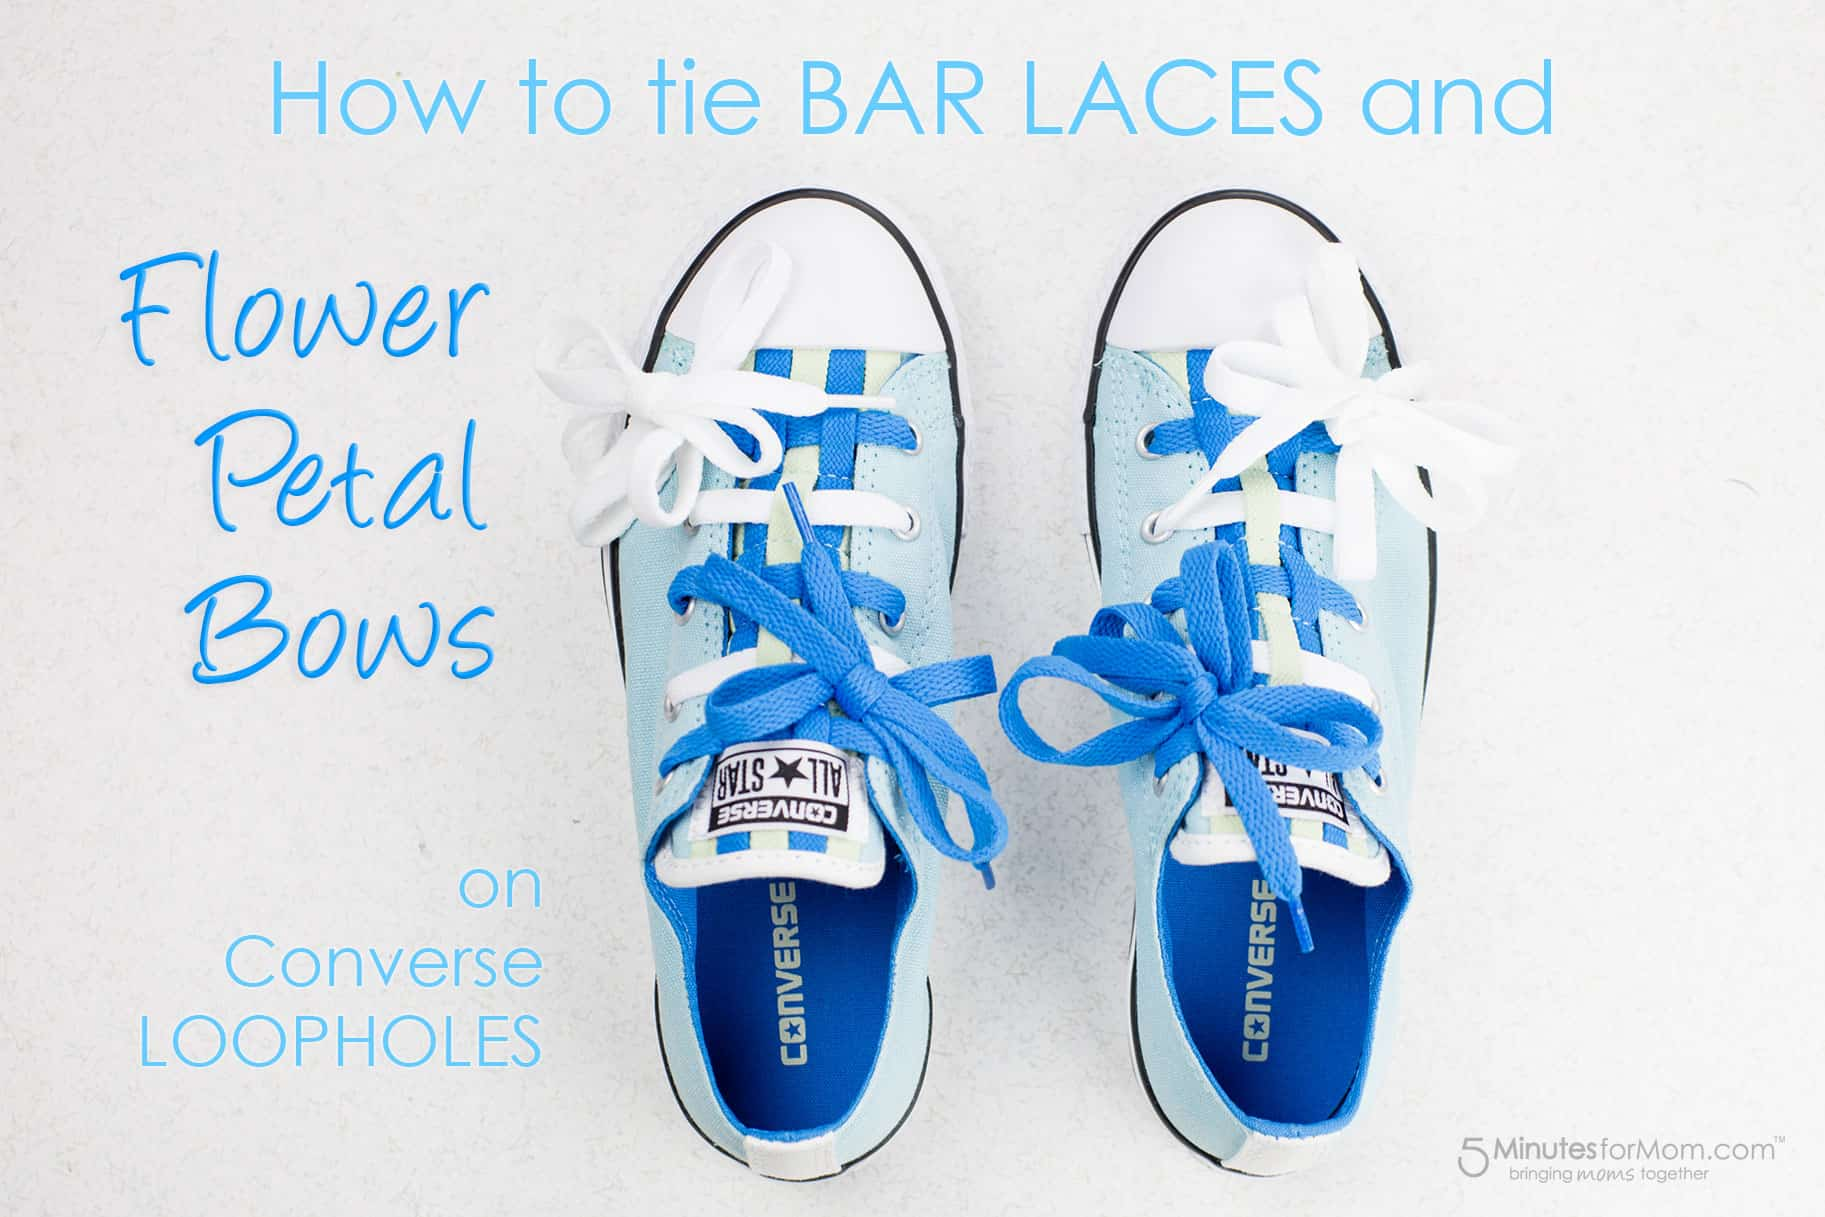 2464b4f9fb2a How to Tie Shoelaces on Converse Loopholes with Bar Laces and Bows